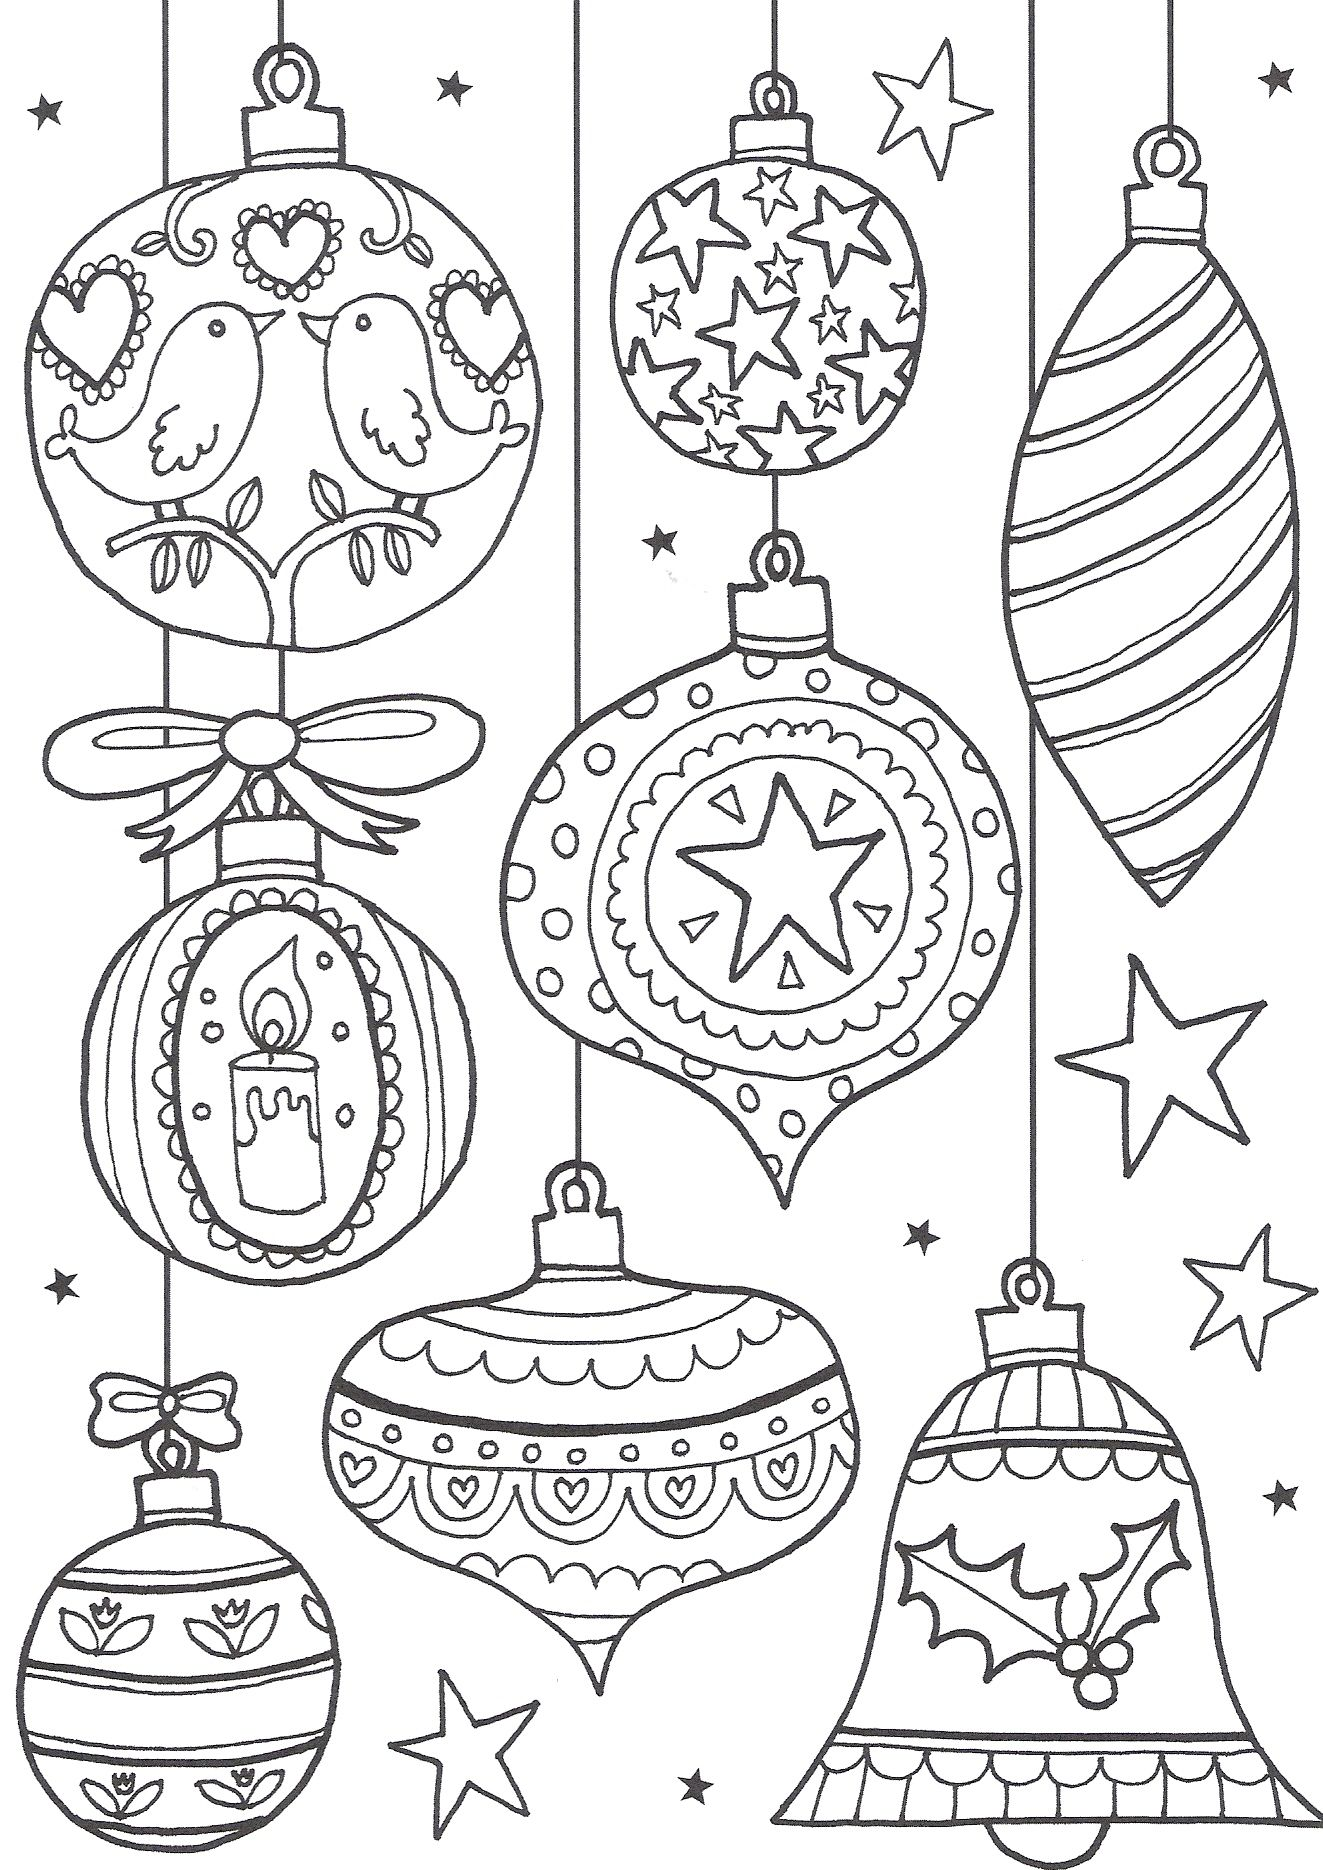 Merry Christmas Colouring Pages Printable With Free For Adults The Ultimate Roundup